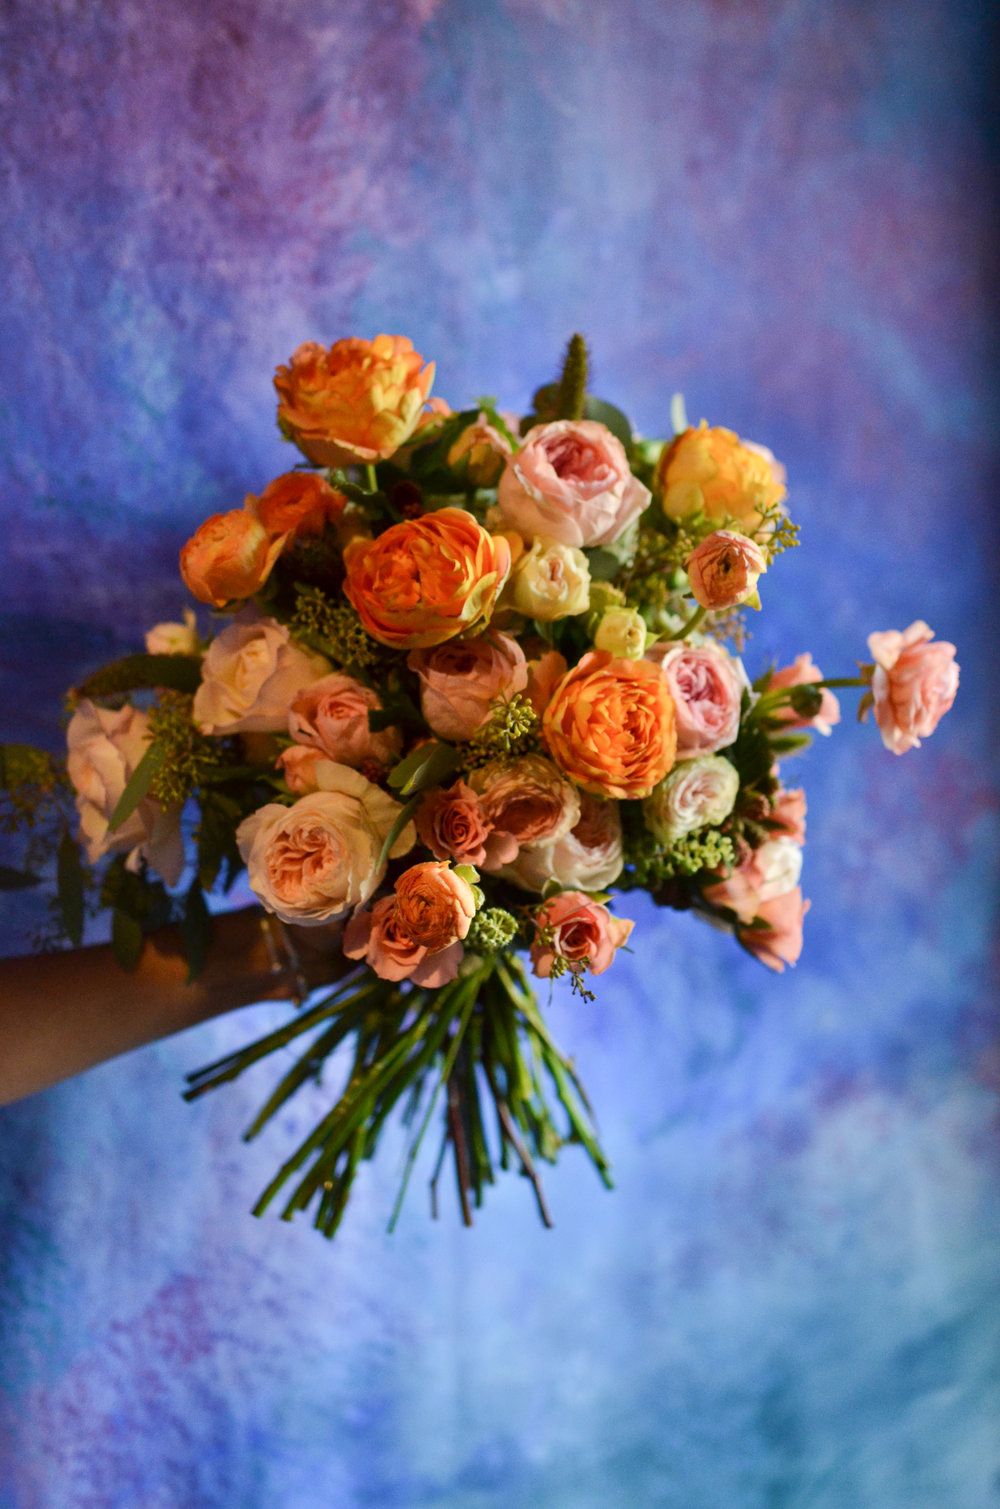 A bridal bouquet that resembles a rose garden